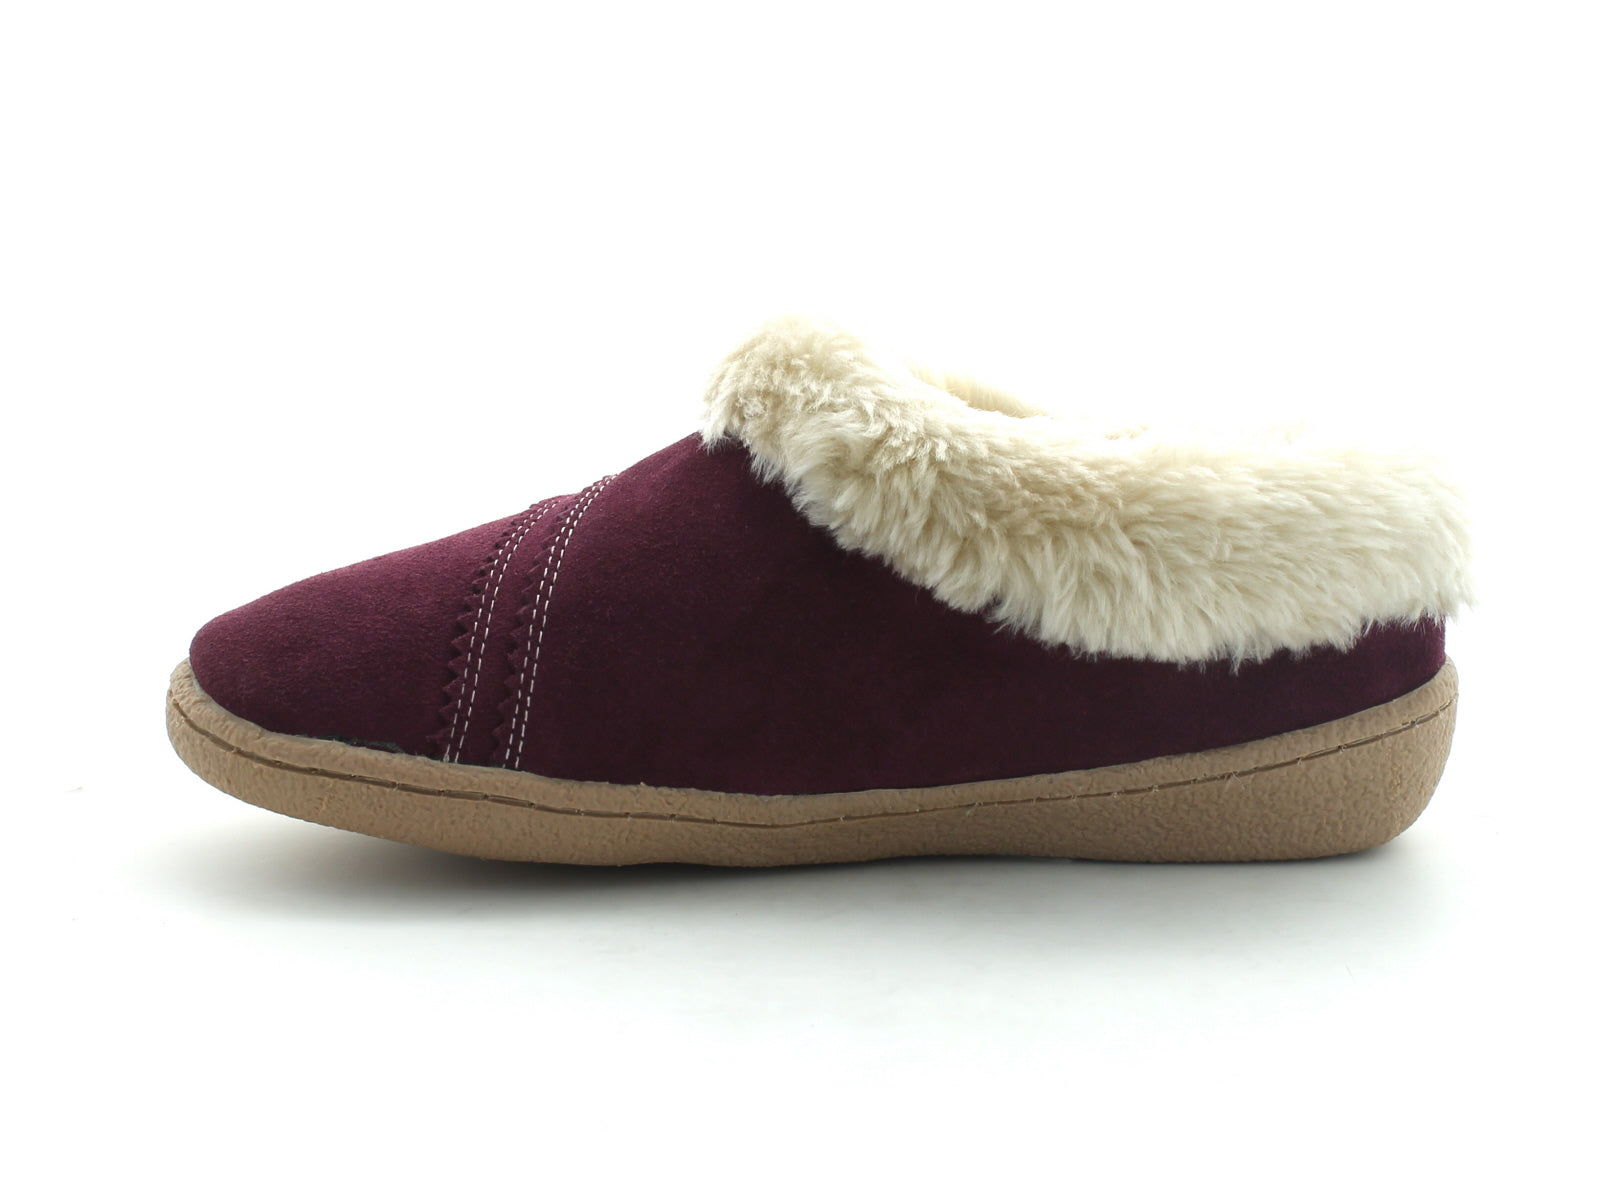 Clarks Eskimo Snow in Berry Suede inner view